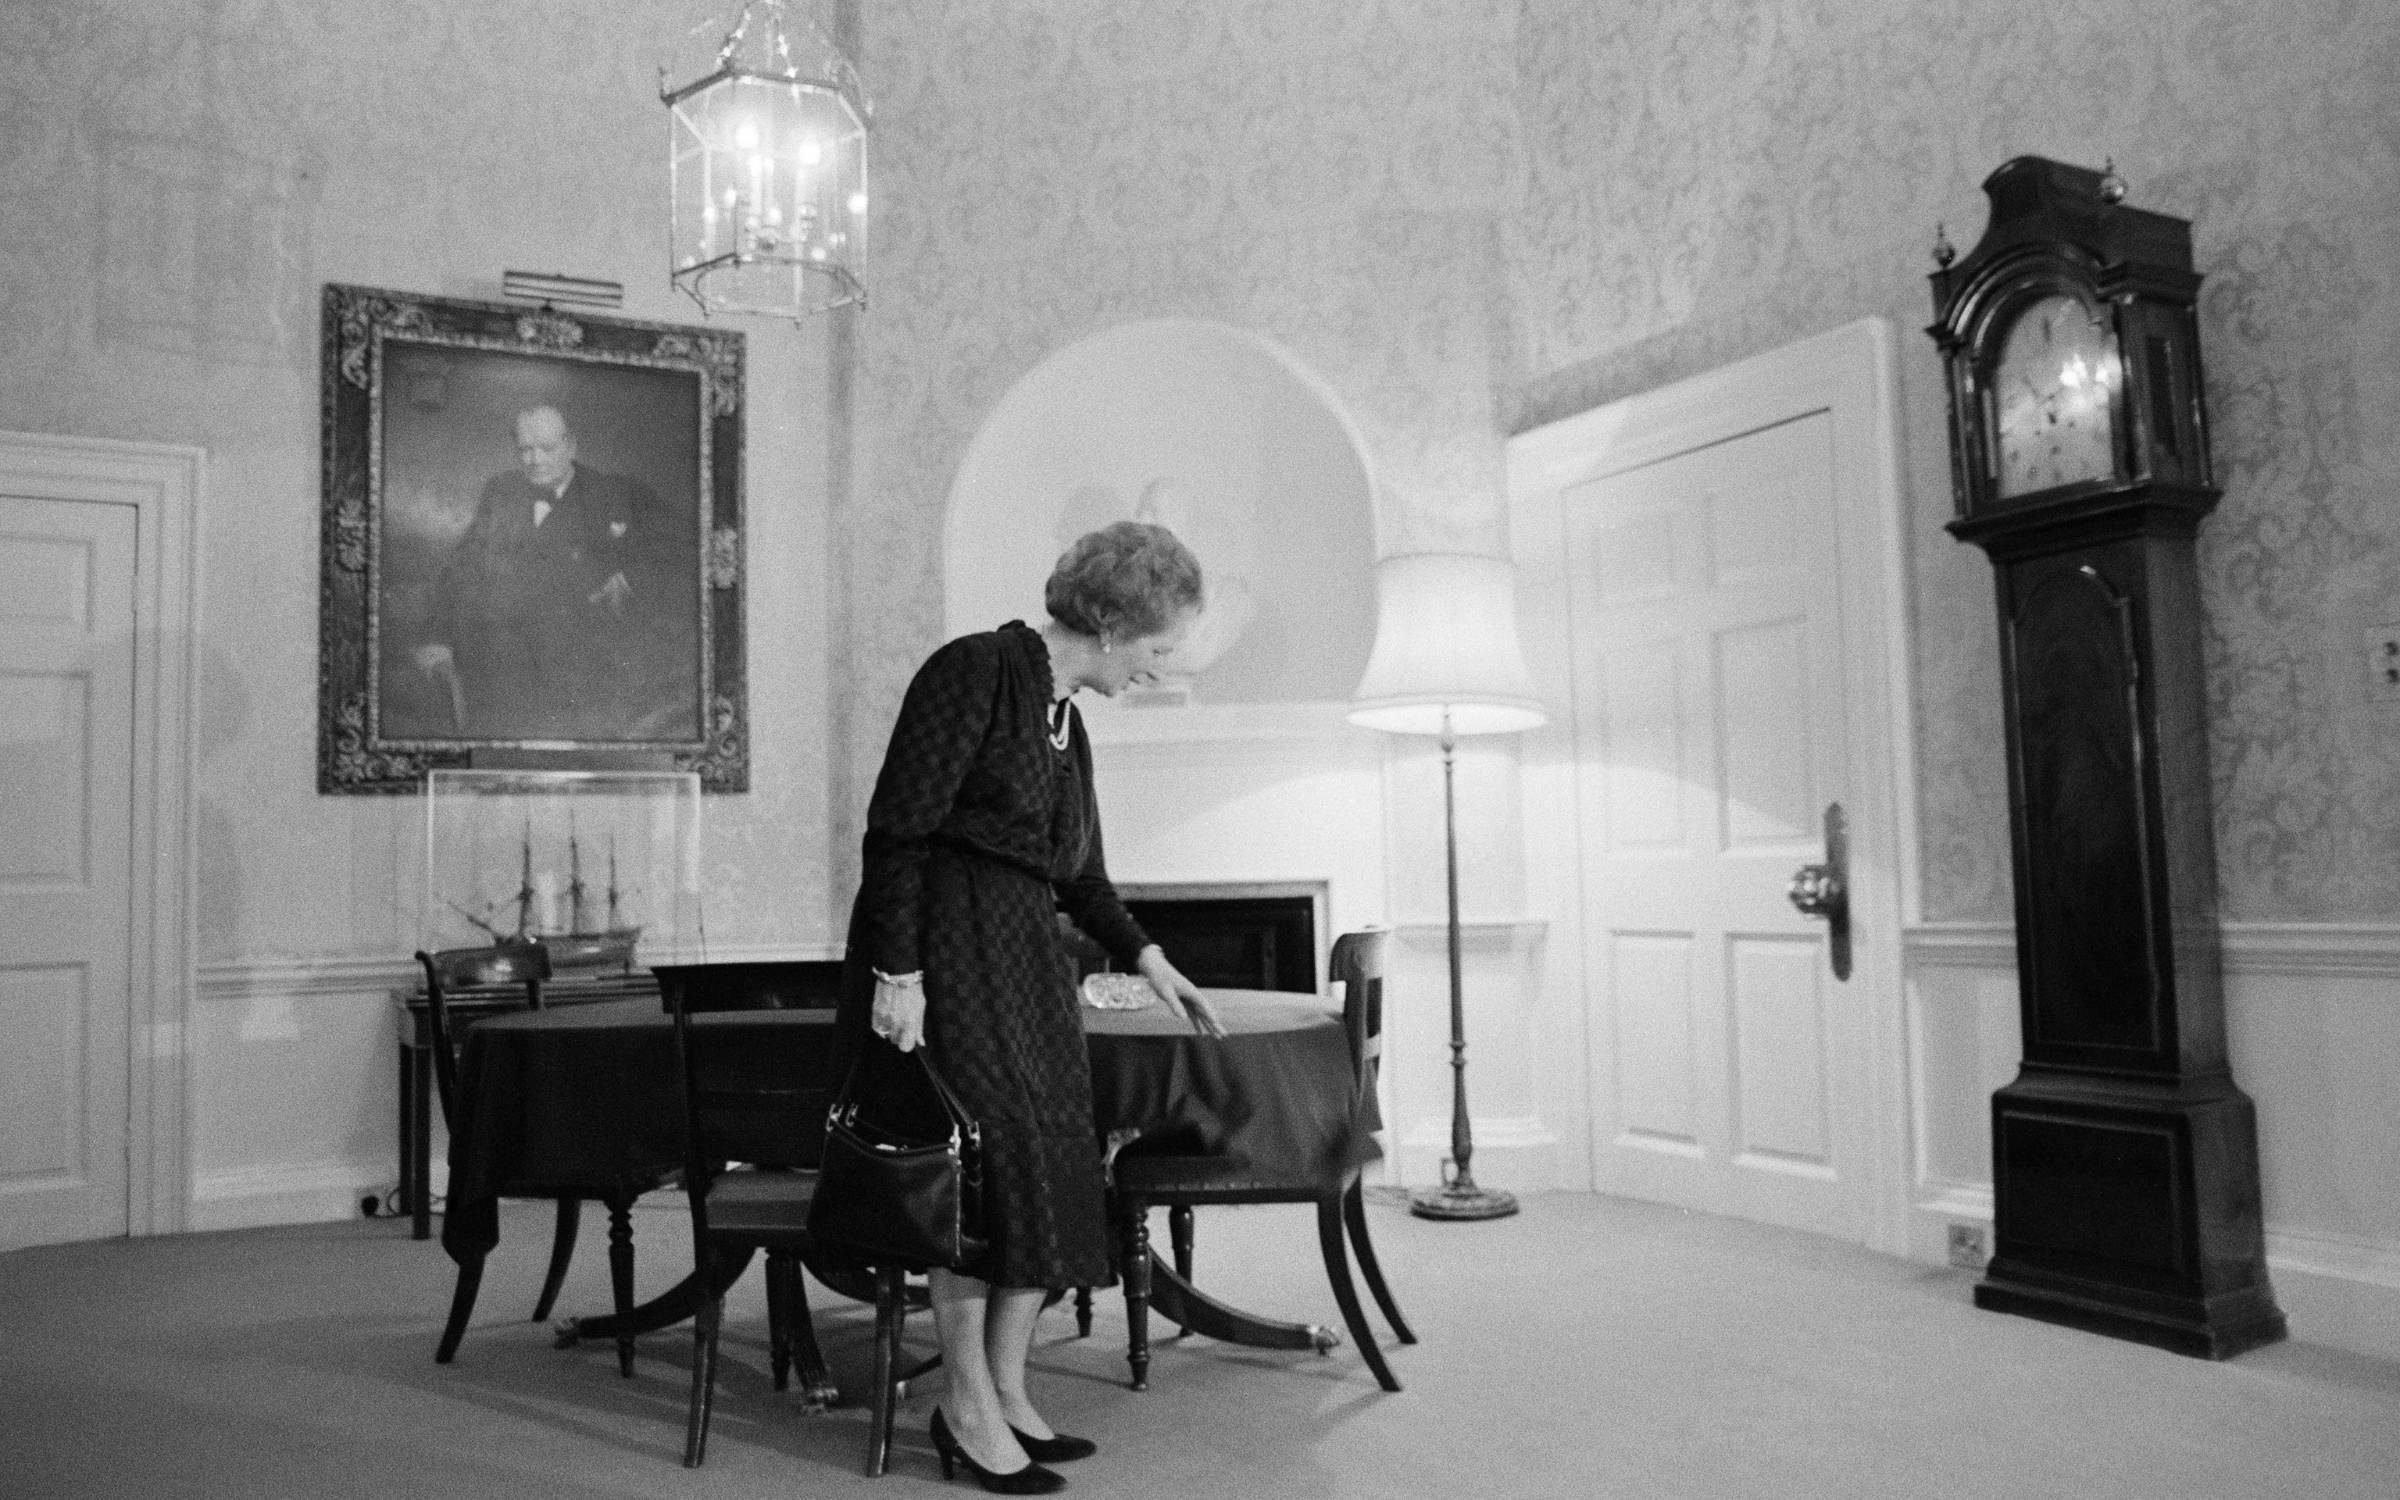 British Conservative prime minister Margaret Thatcher wipes crumbs off the table at 10, Downing Street, London, circa 1990. A painting of her predecessor Winston Churchill hangs on the wall behind her. (Photo by John Downing/Getty Images).